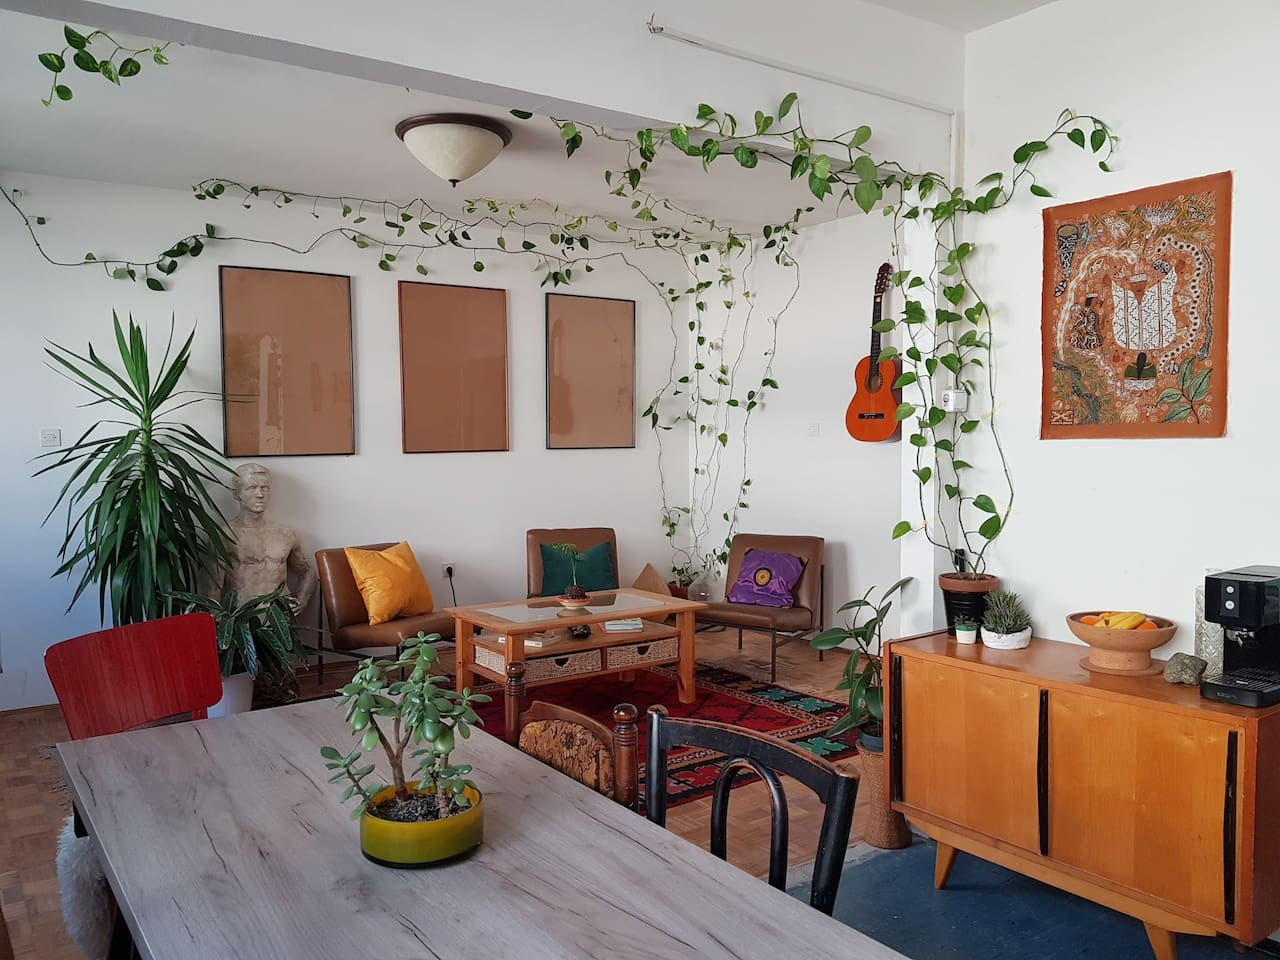 Living room/kitchen - shared space